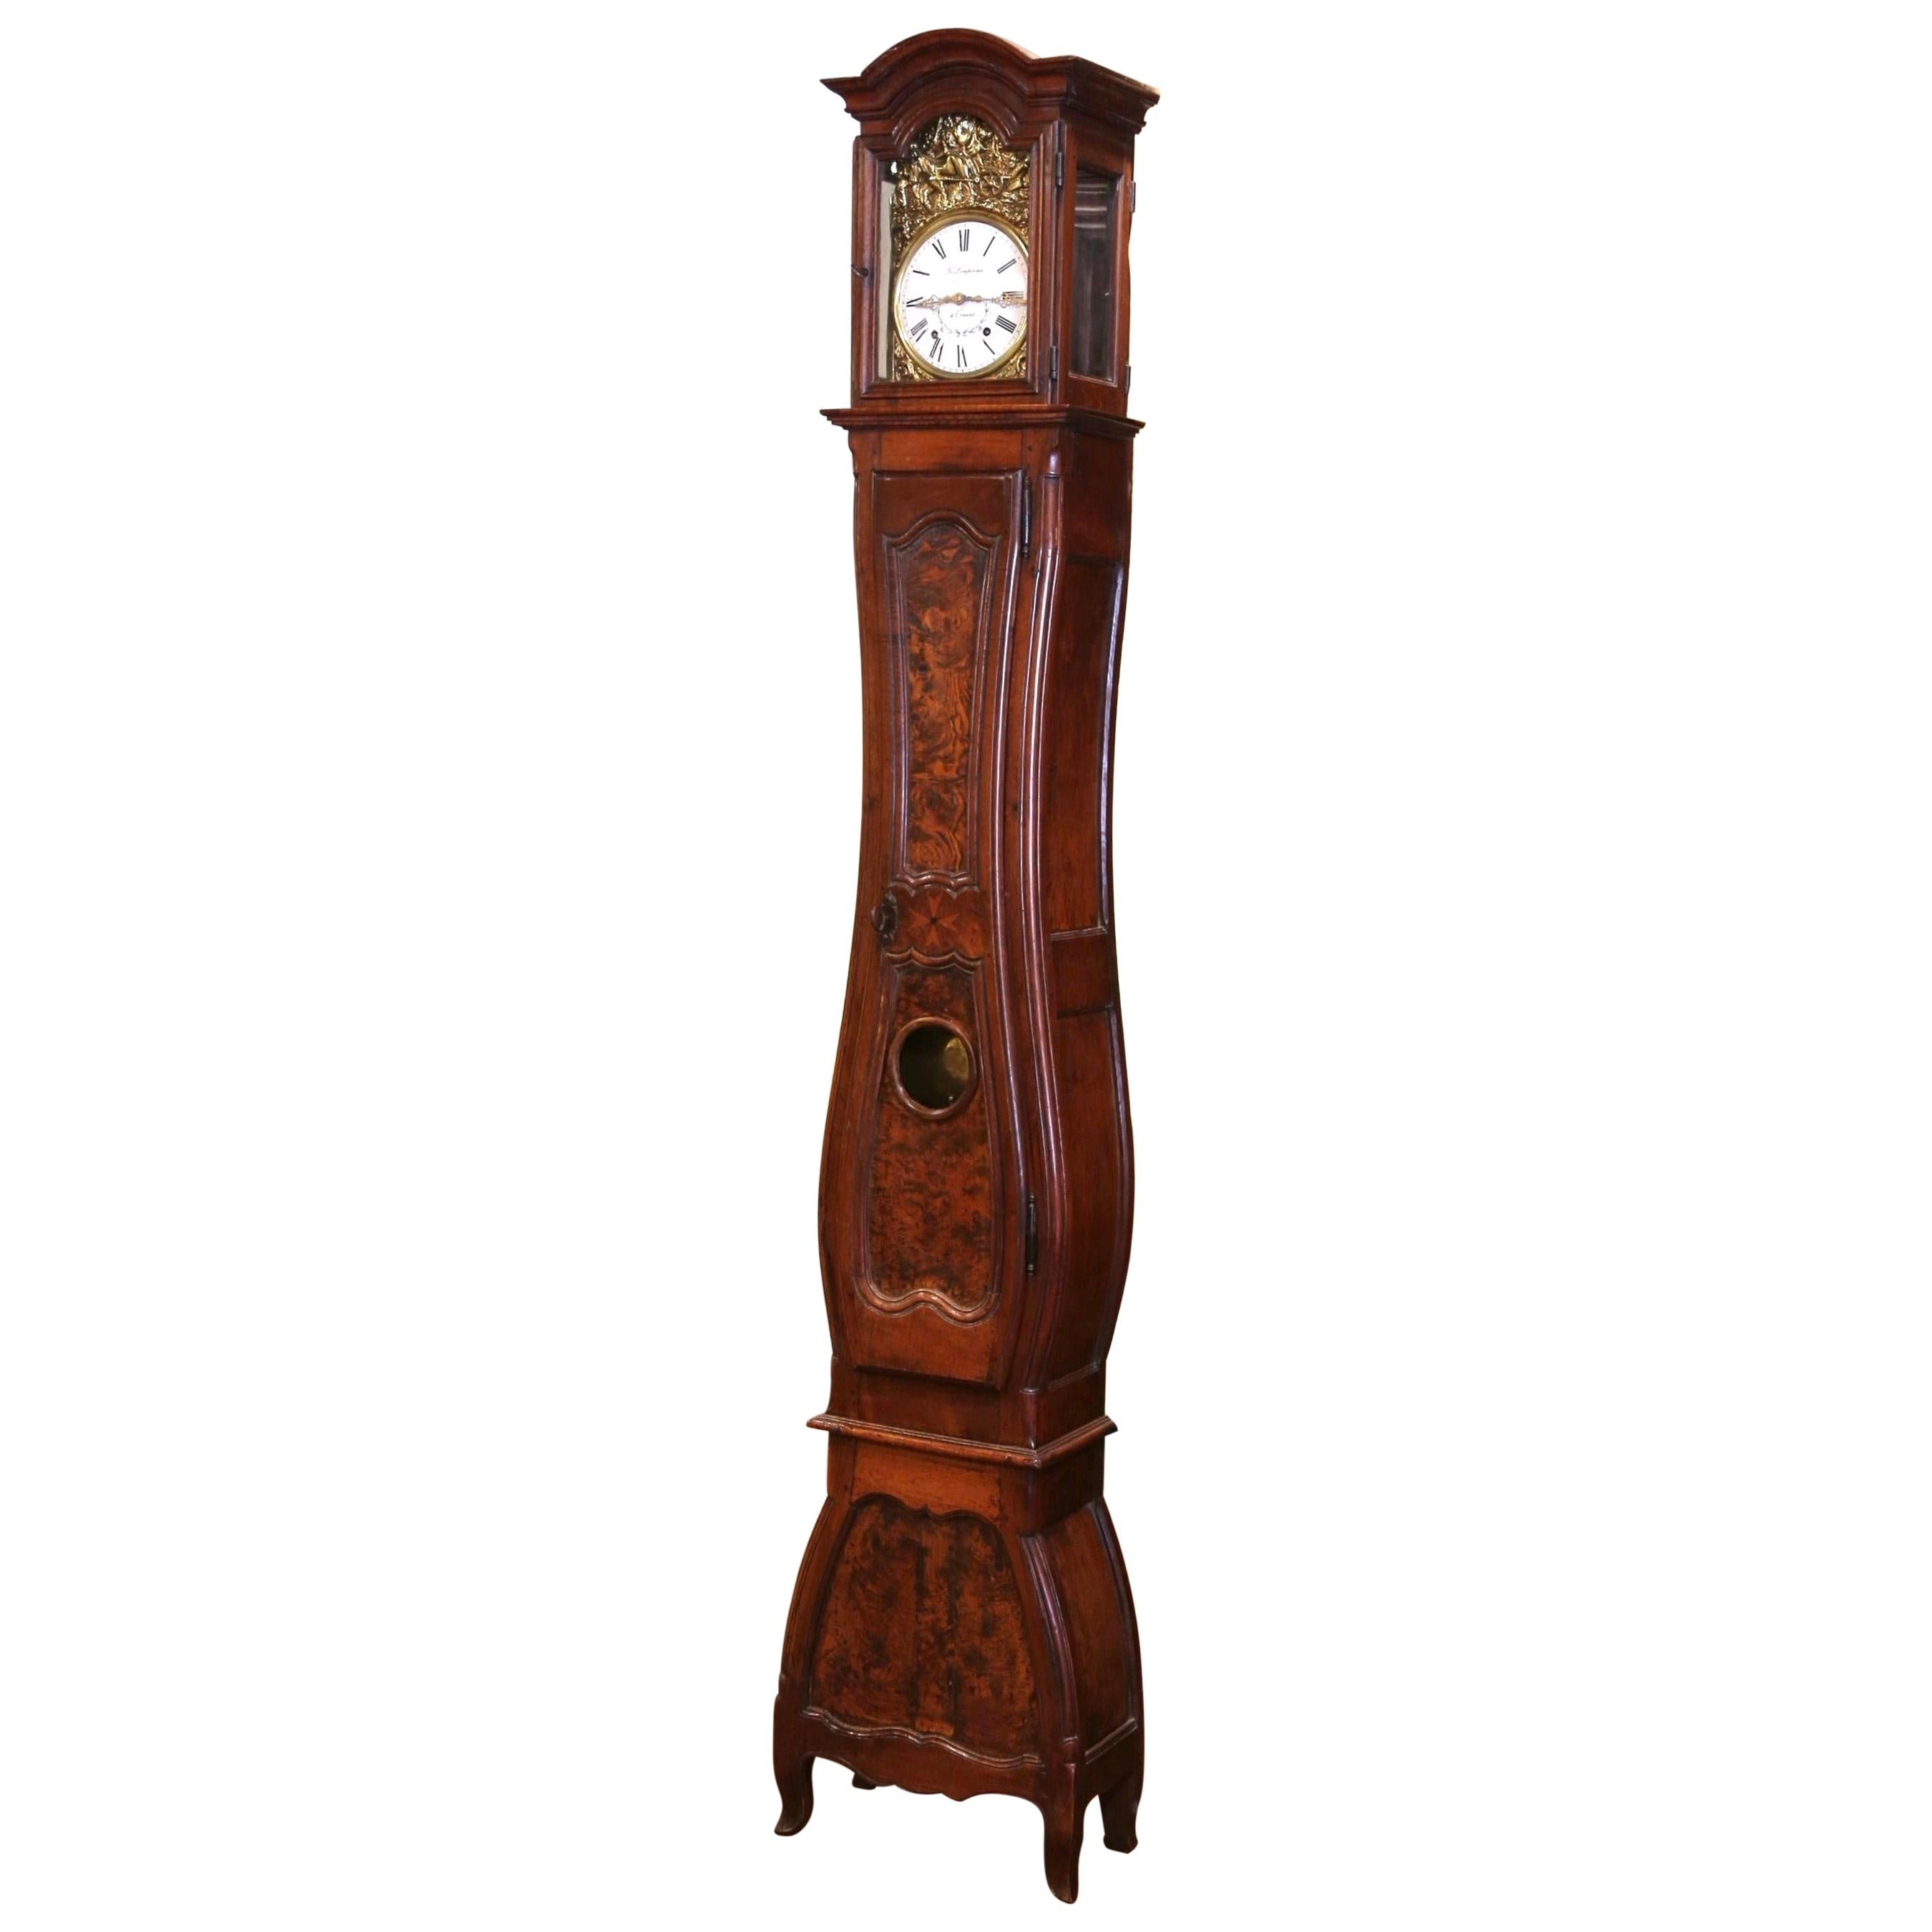 Mid-18th Century French Louis XV Carved Burl Walnut Tall Case Clock from Lyon